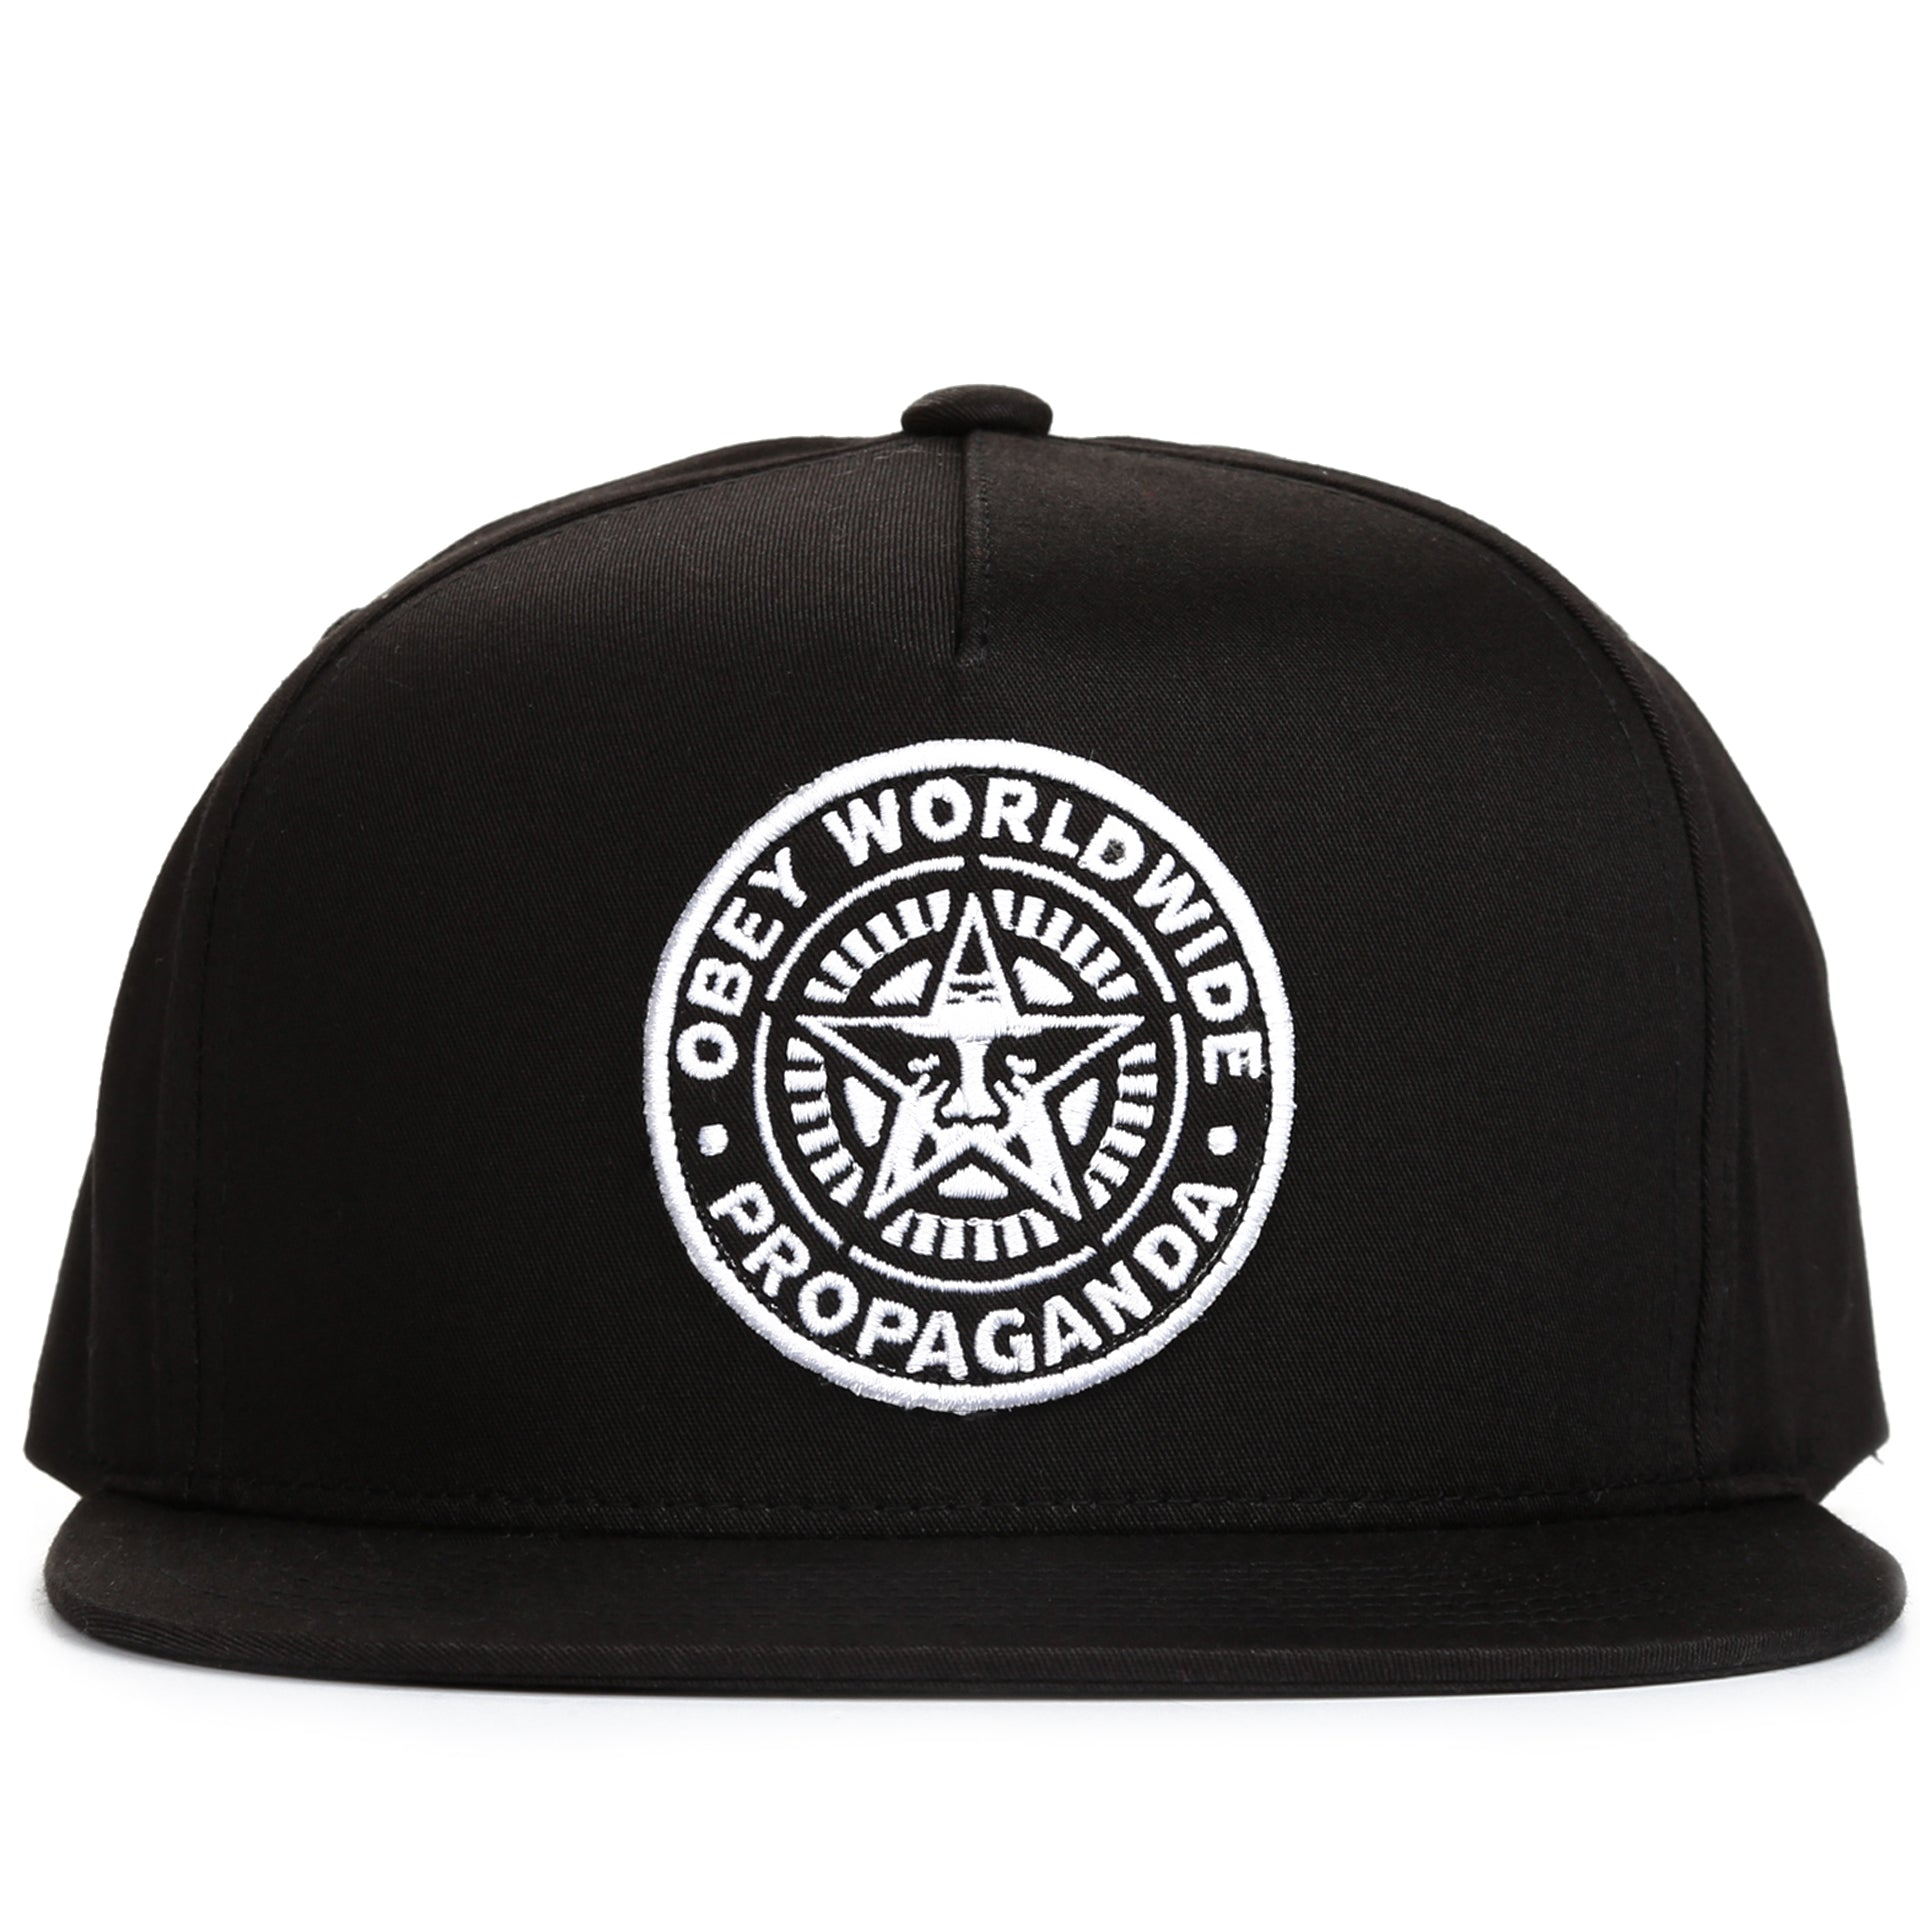 00f2152819bfb Obey Classic Patch Snapback - Black - New Star